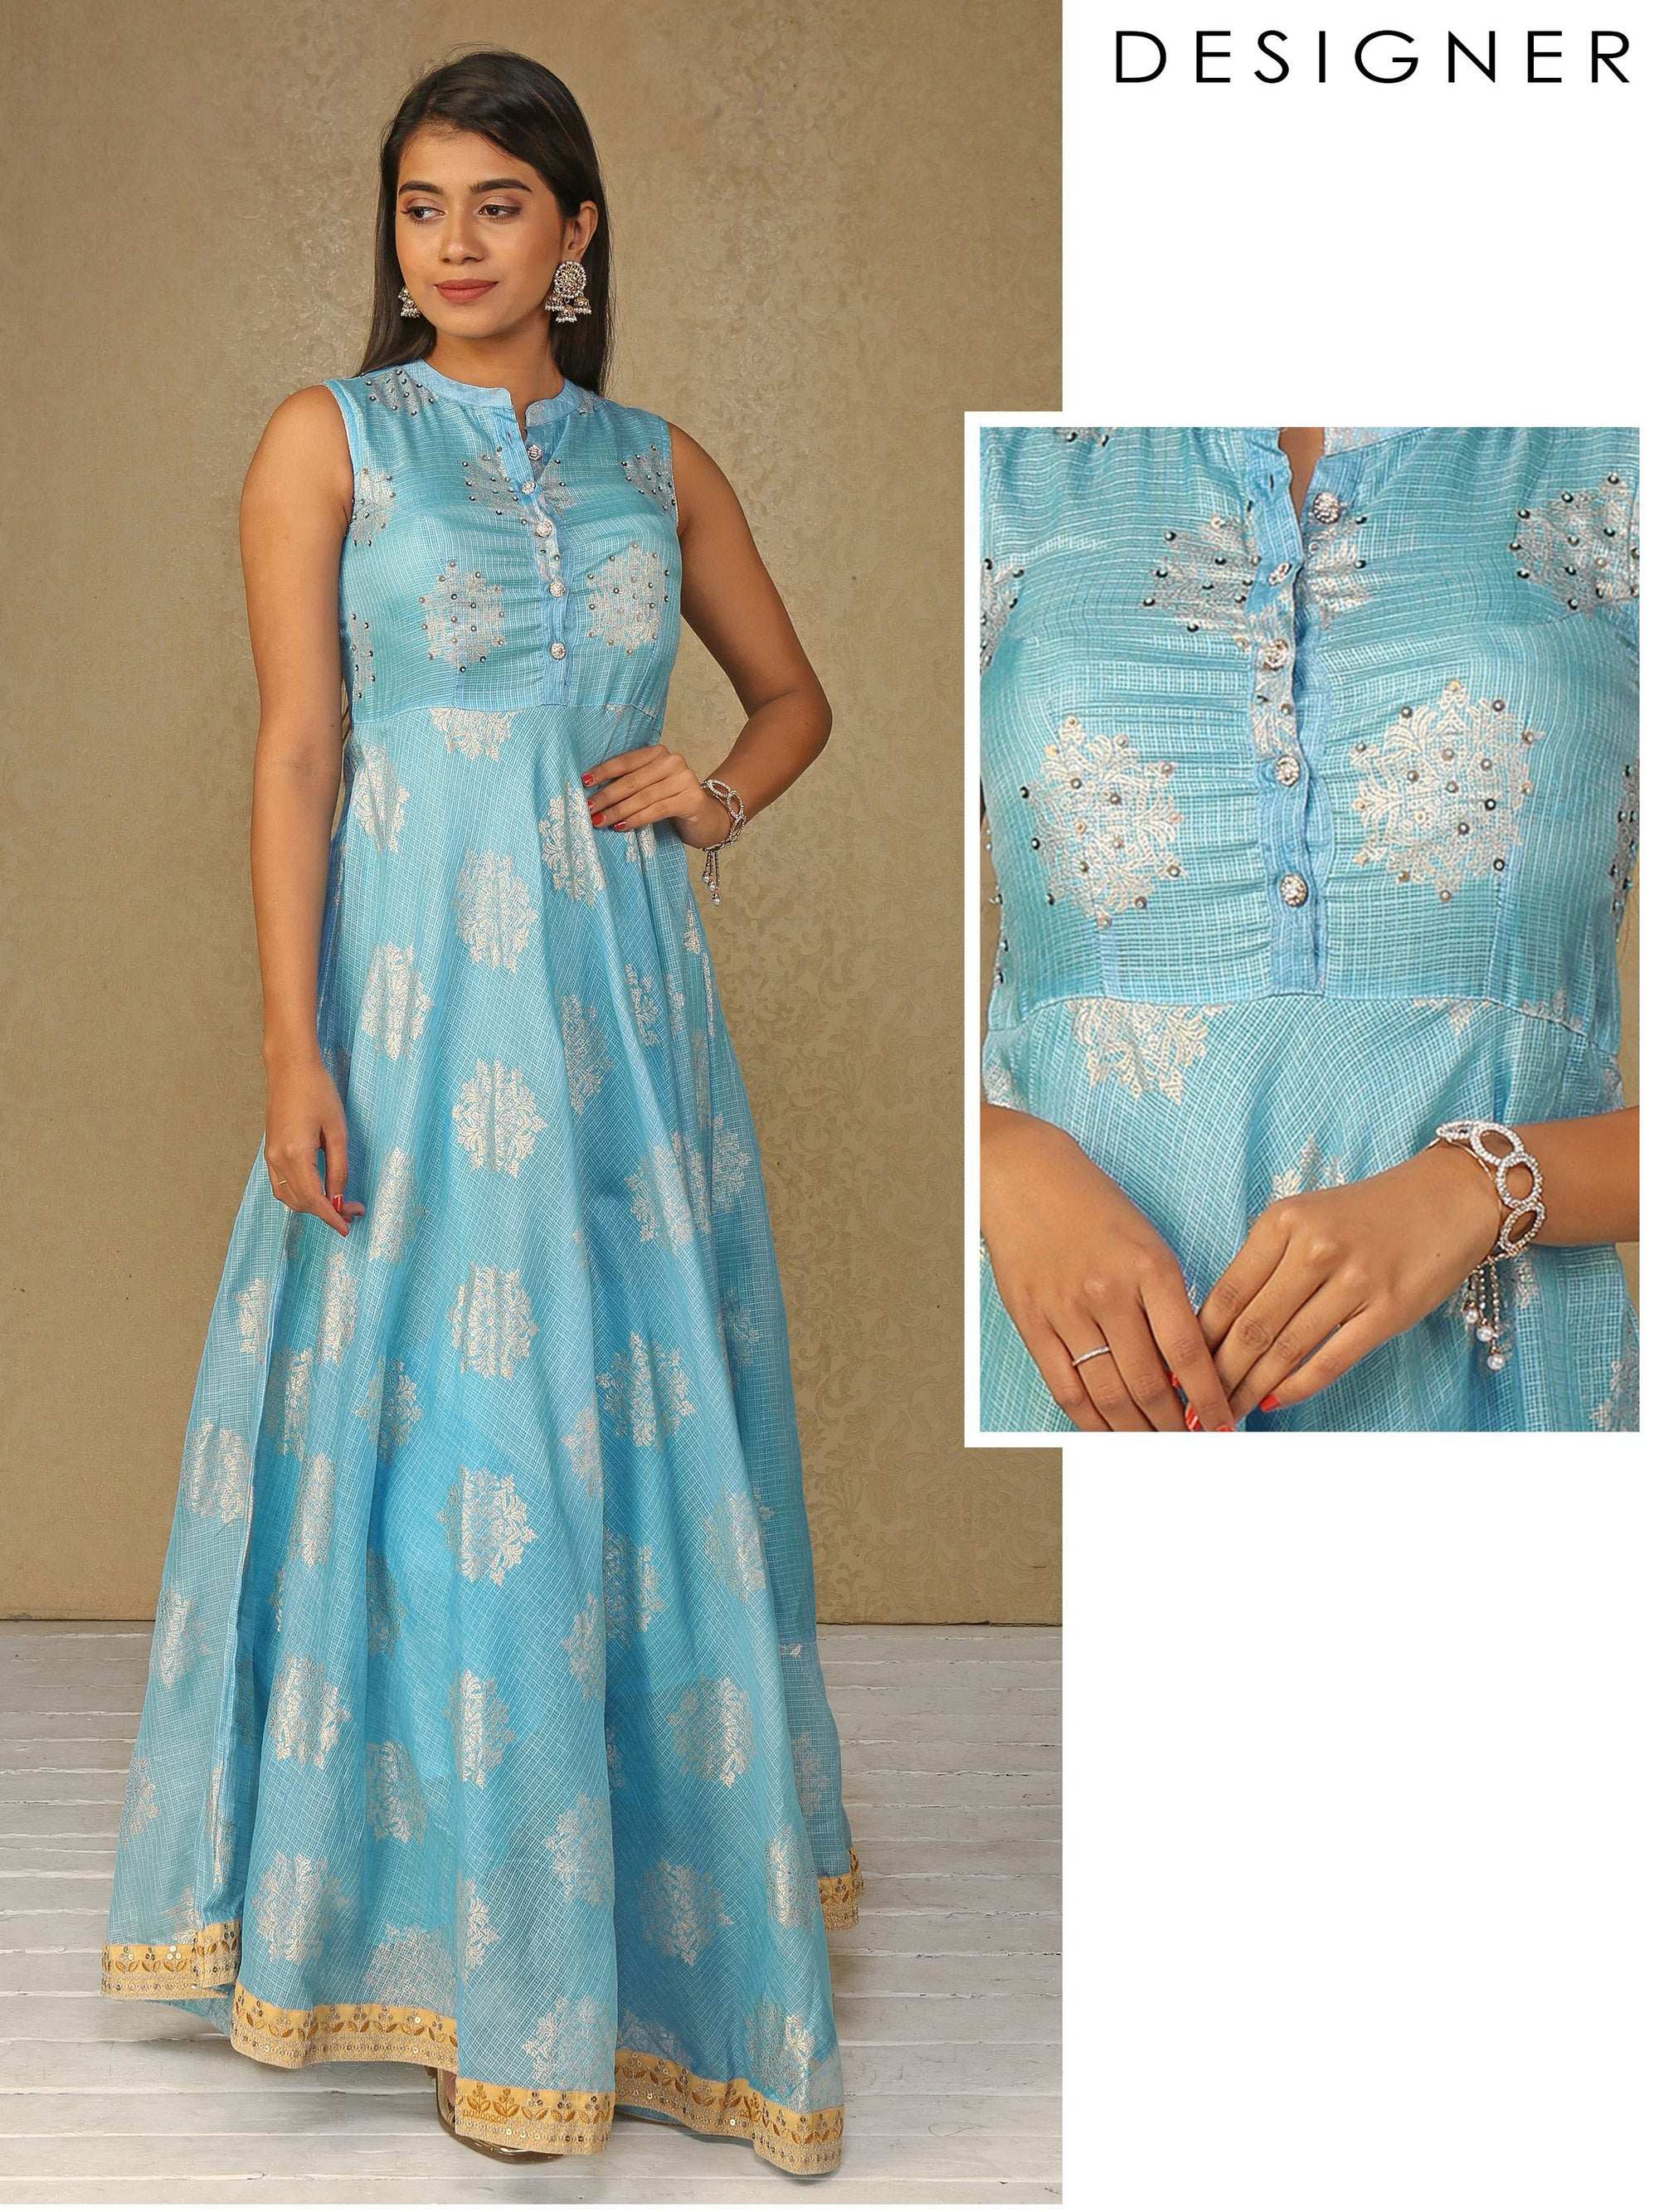 Gold Foil Printed Powder Blue Full Length Anarkali